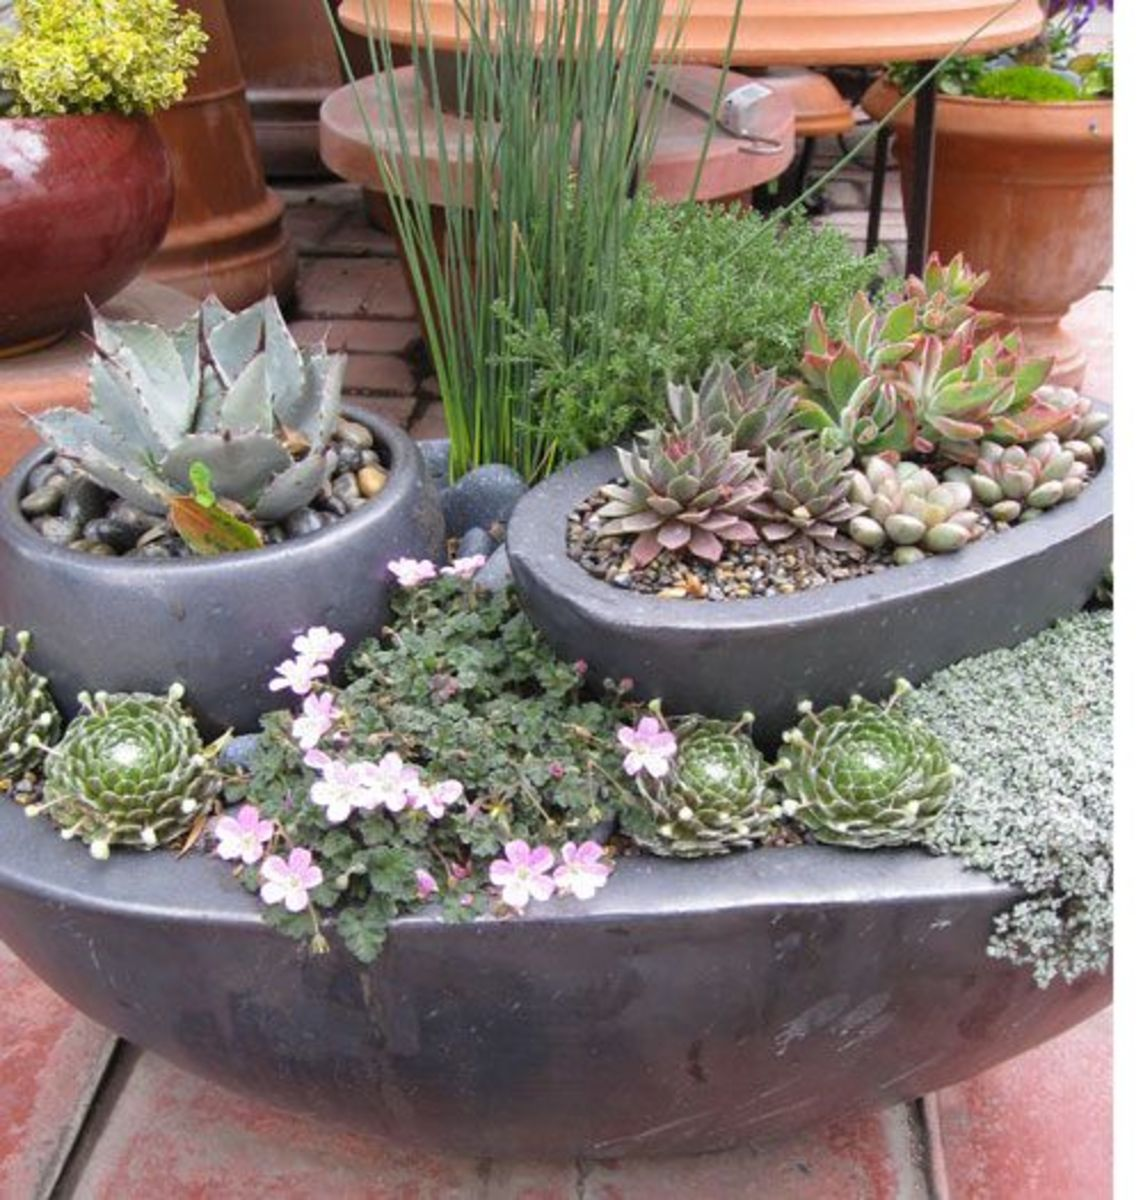 Placing pots within pots in order to created a layered garden is a great idea when short on space outside.